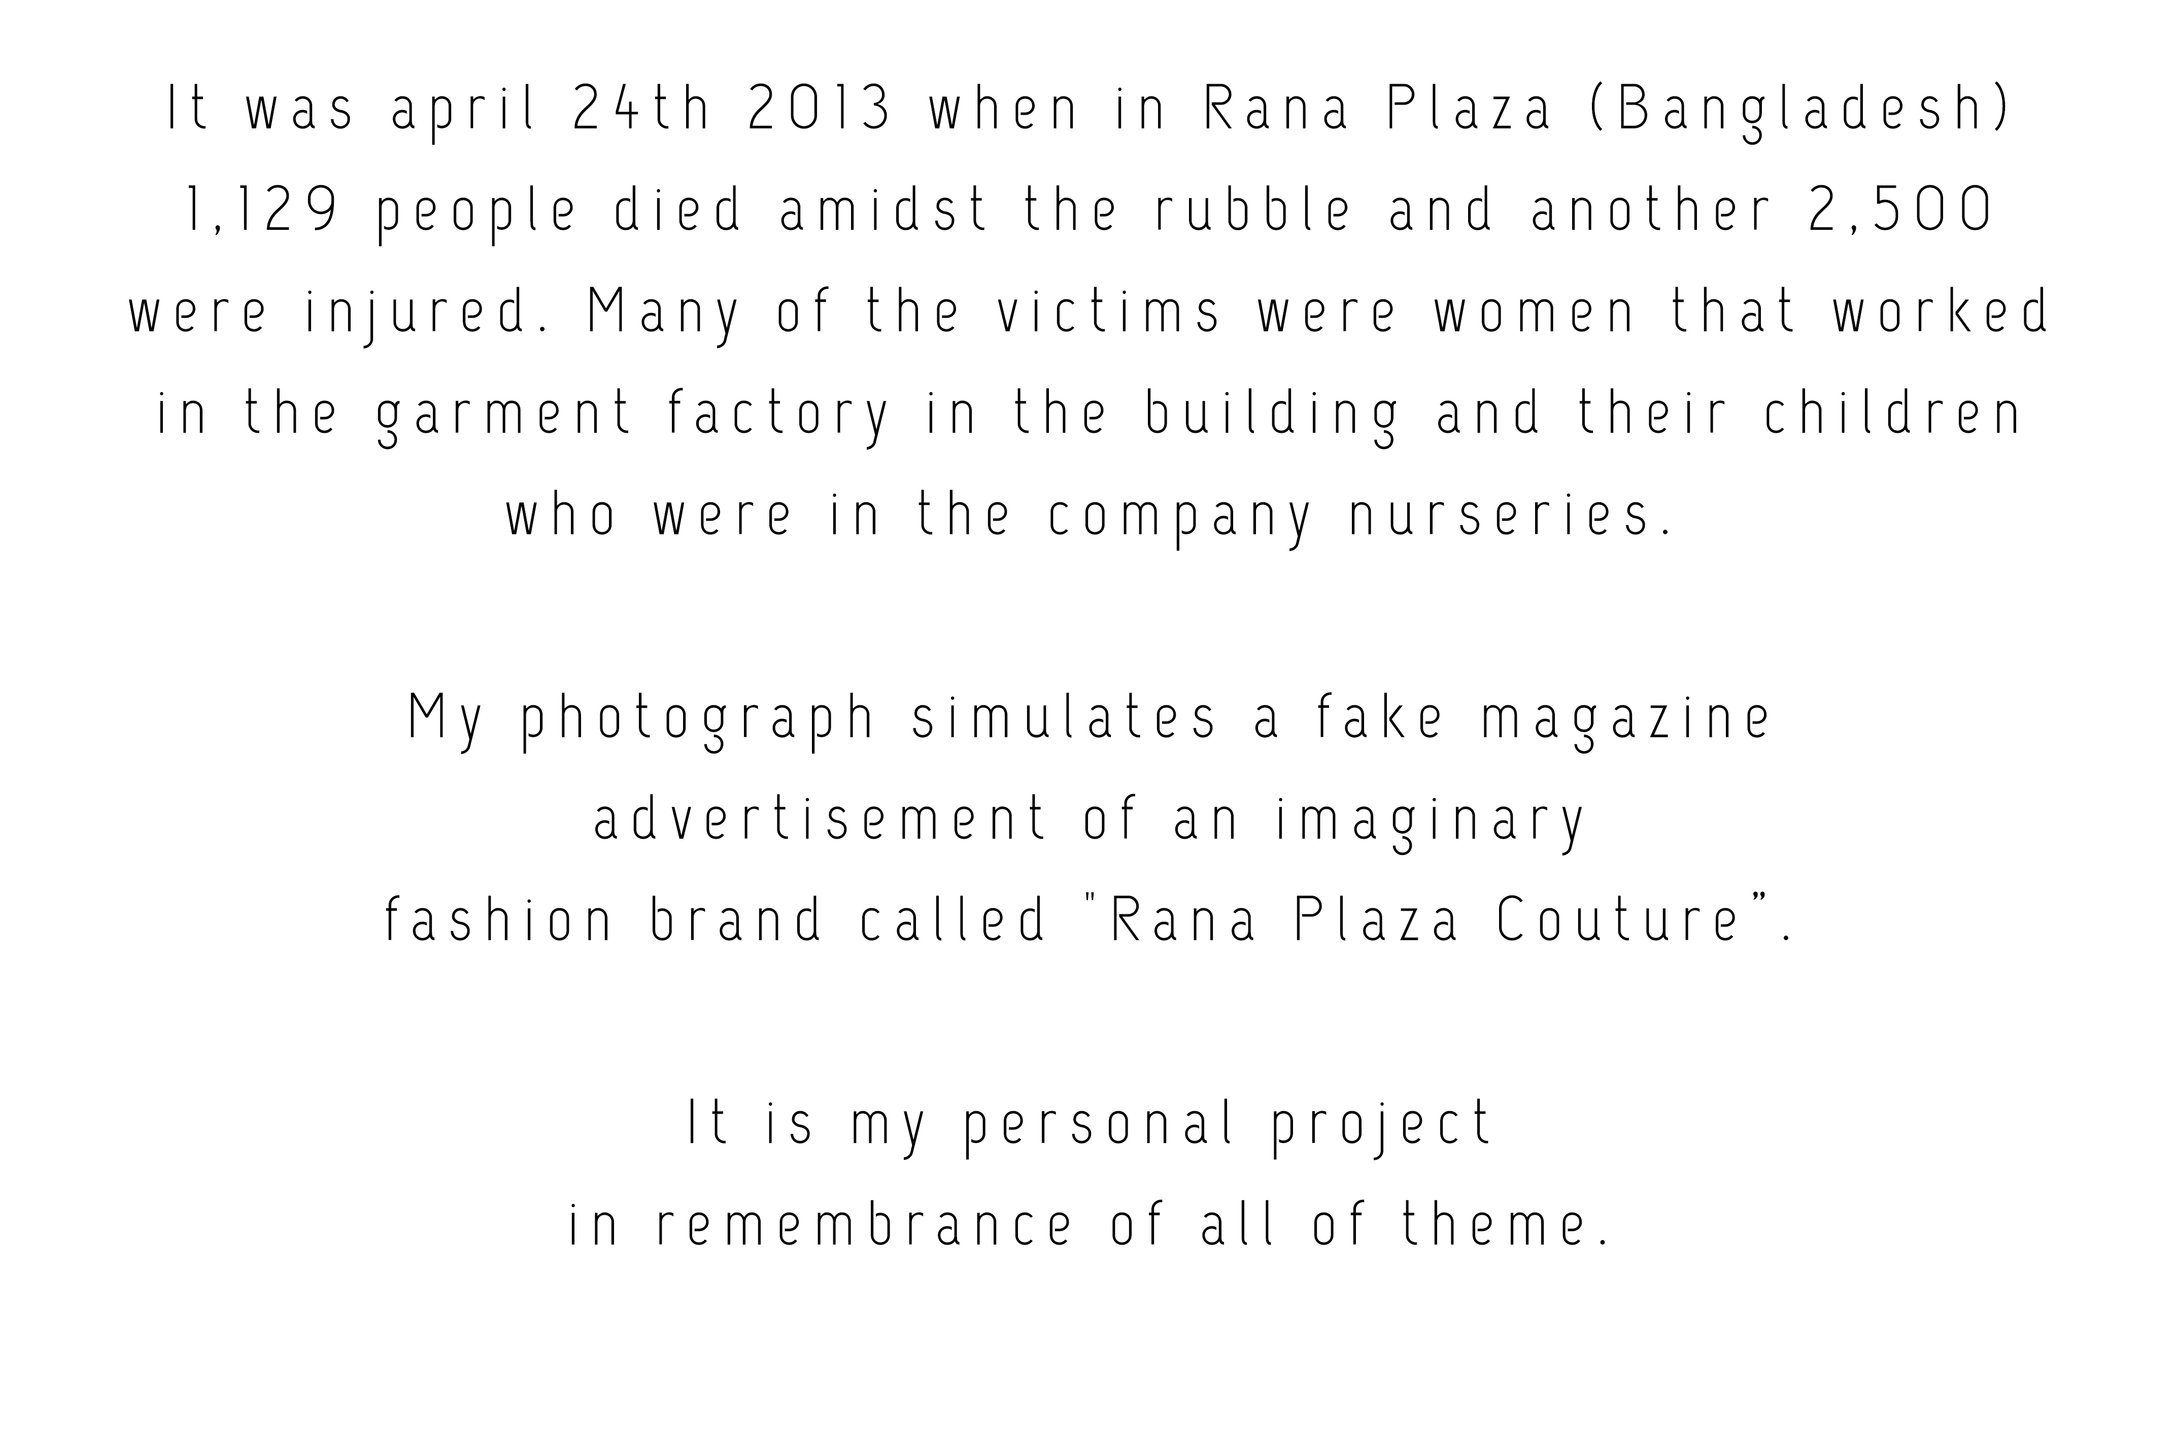 002_intro_Rana Plaza Couture.jpg